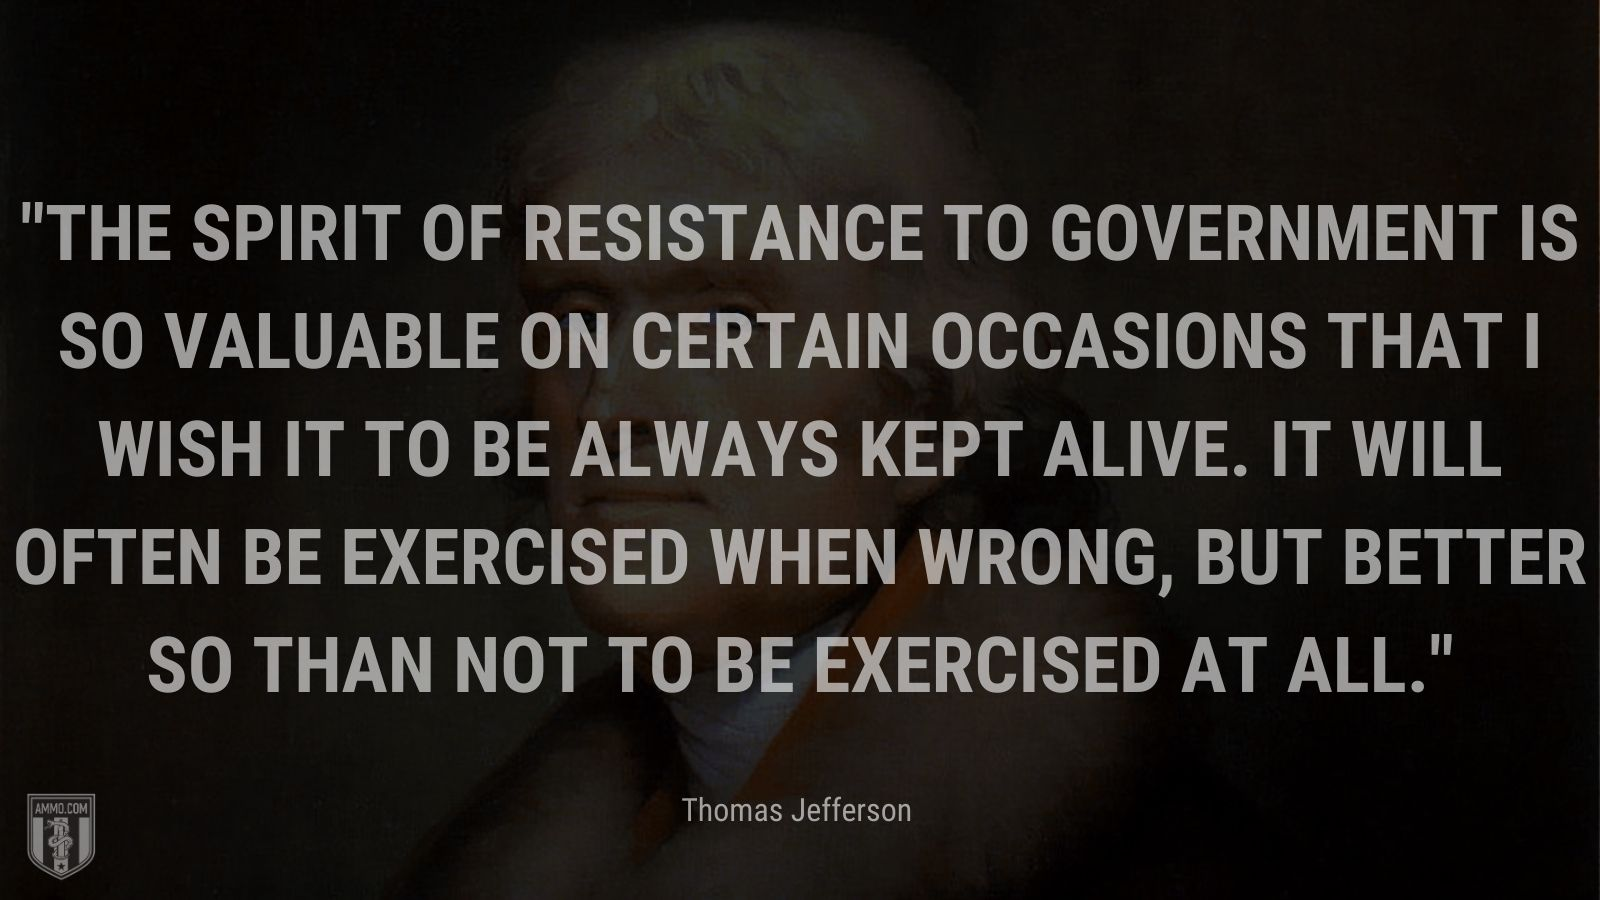 """""""The spirit of resistance to government is so valuable on certain occasions that I wish it to be always kept alive. It will often be exercised when wrong, but better so than not to be exercised at all."""" - Thomas Jefferson"""